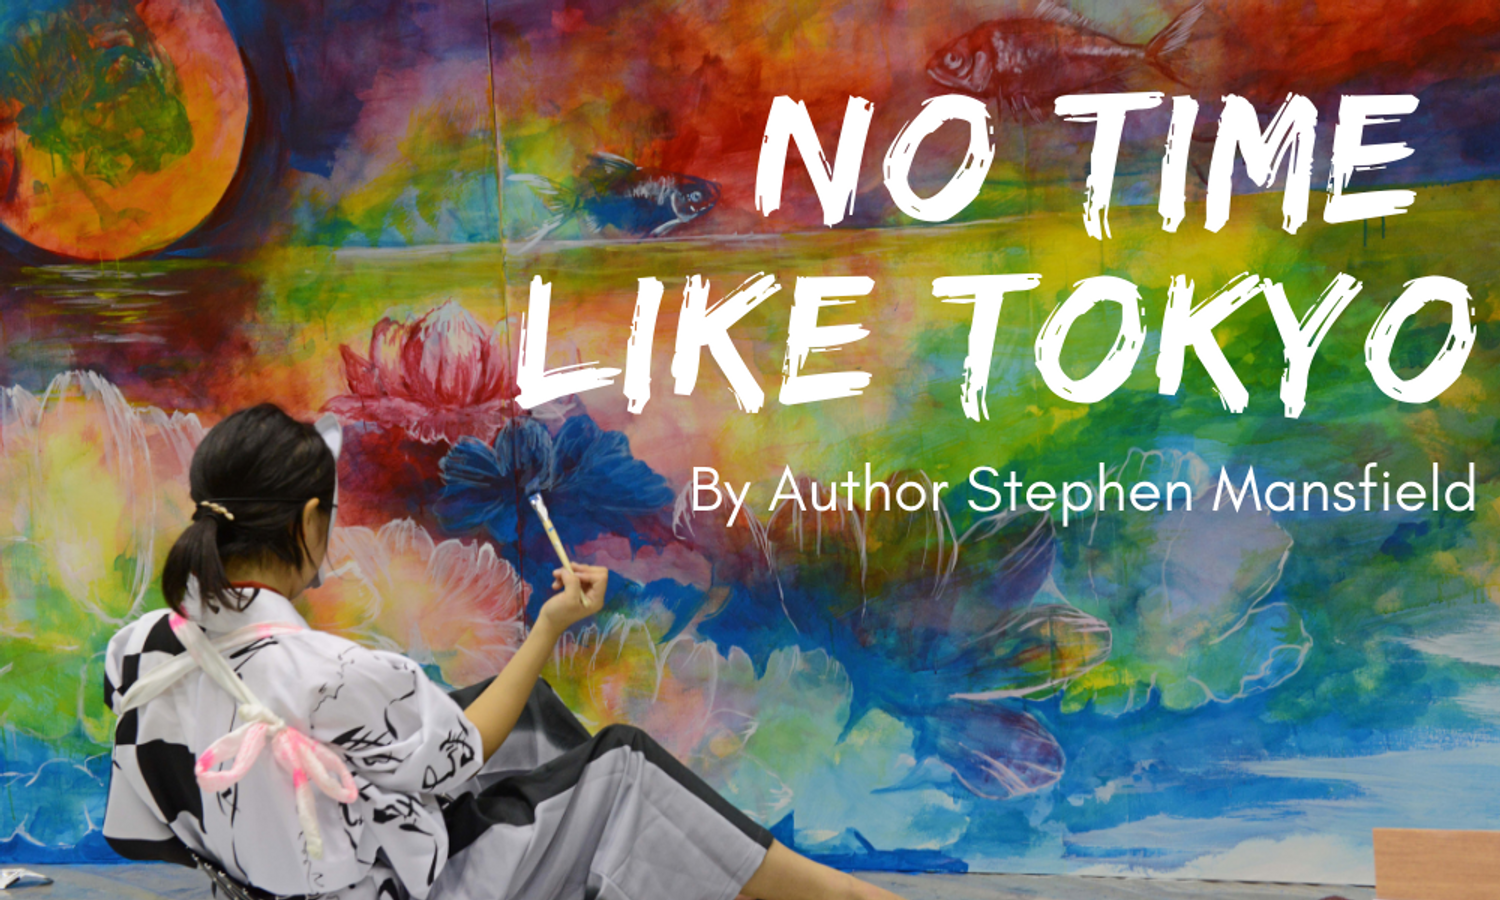 No Time Like Tokyo: Guest Post by Stephen Mansfield